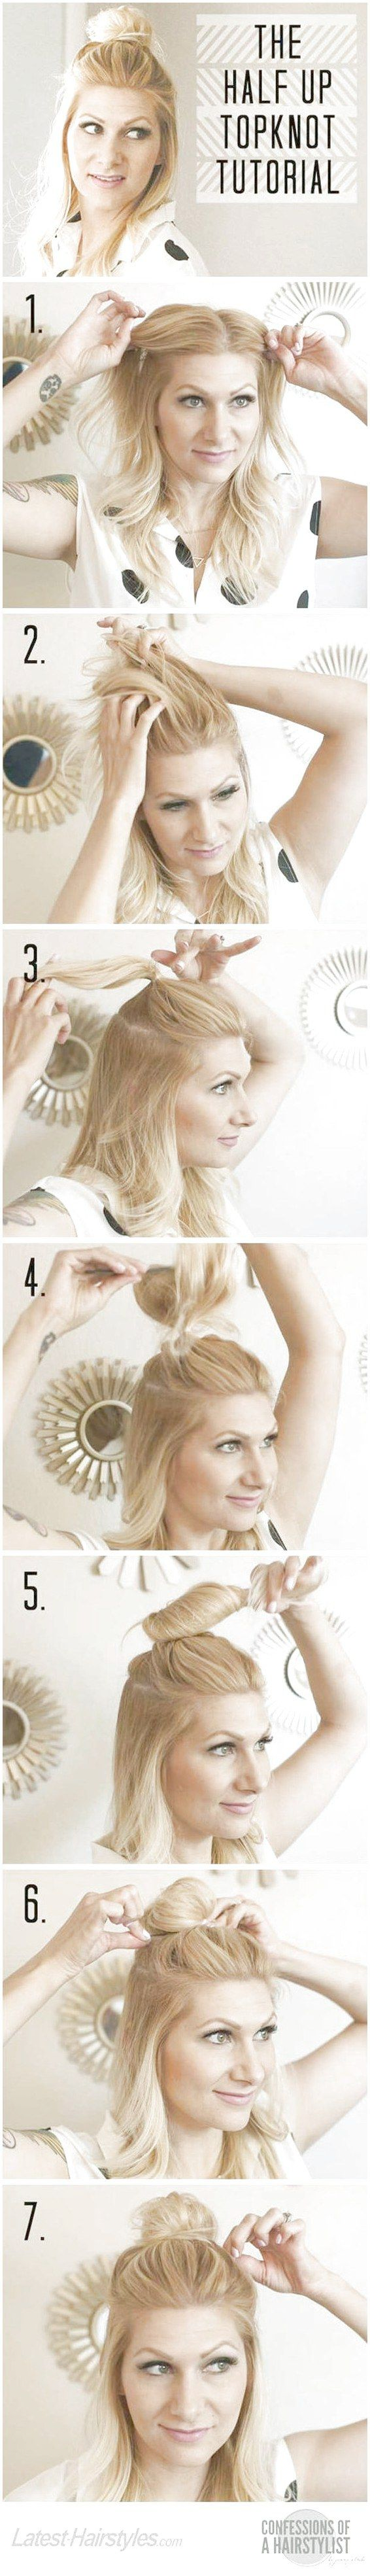 Amazing Half Up-Half Down Hairstyles For Long Hair - How To Do Hairstyle Trend Half Up Top Knot - Easy Step By Step Tutorials And Tips For Hair Styles...